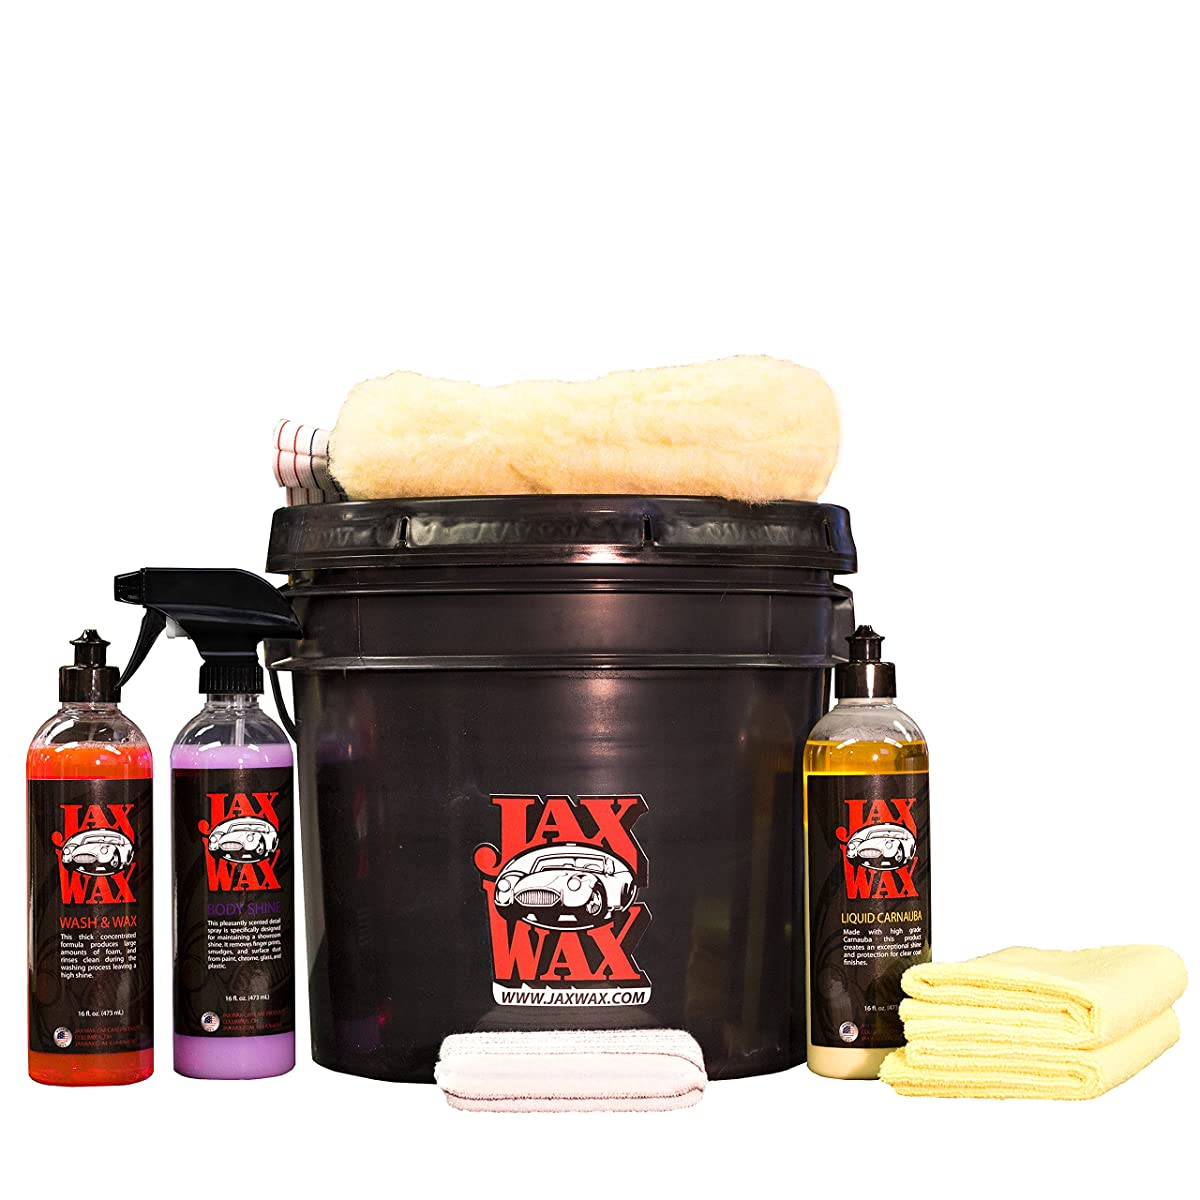 Jax Wax Professional Easy Wash and Wax Car Care Bucket Organizer Kit